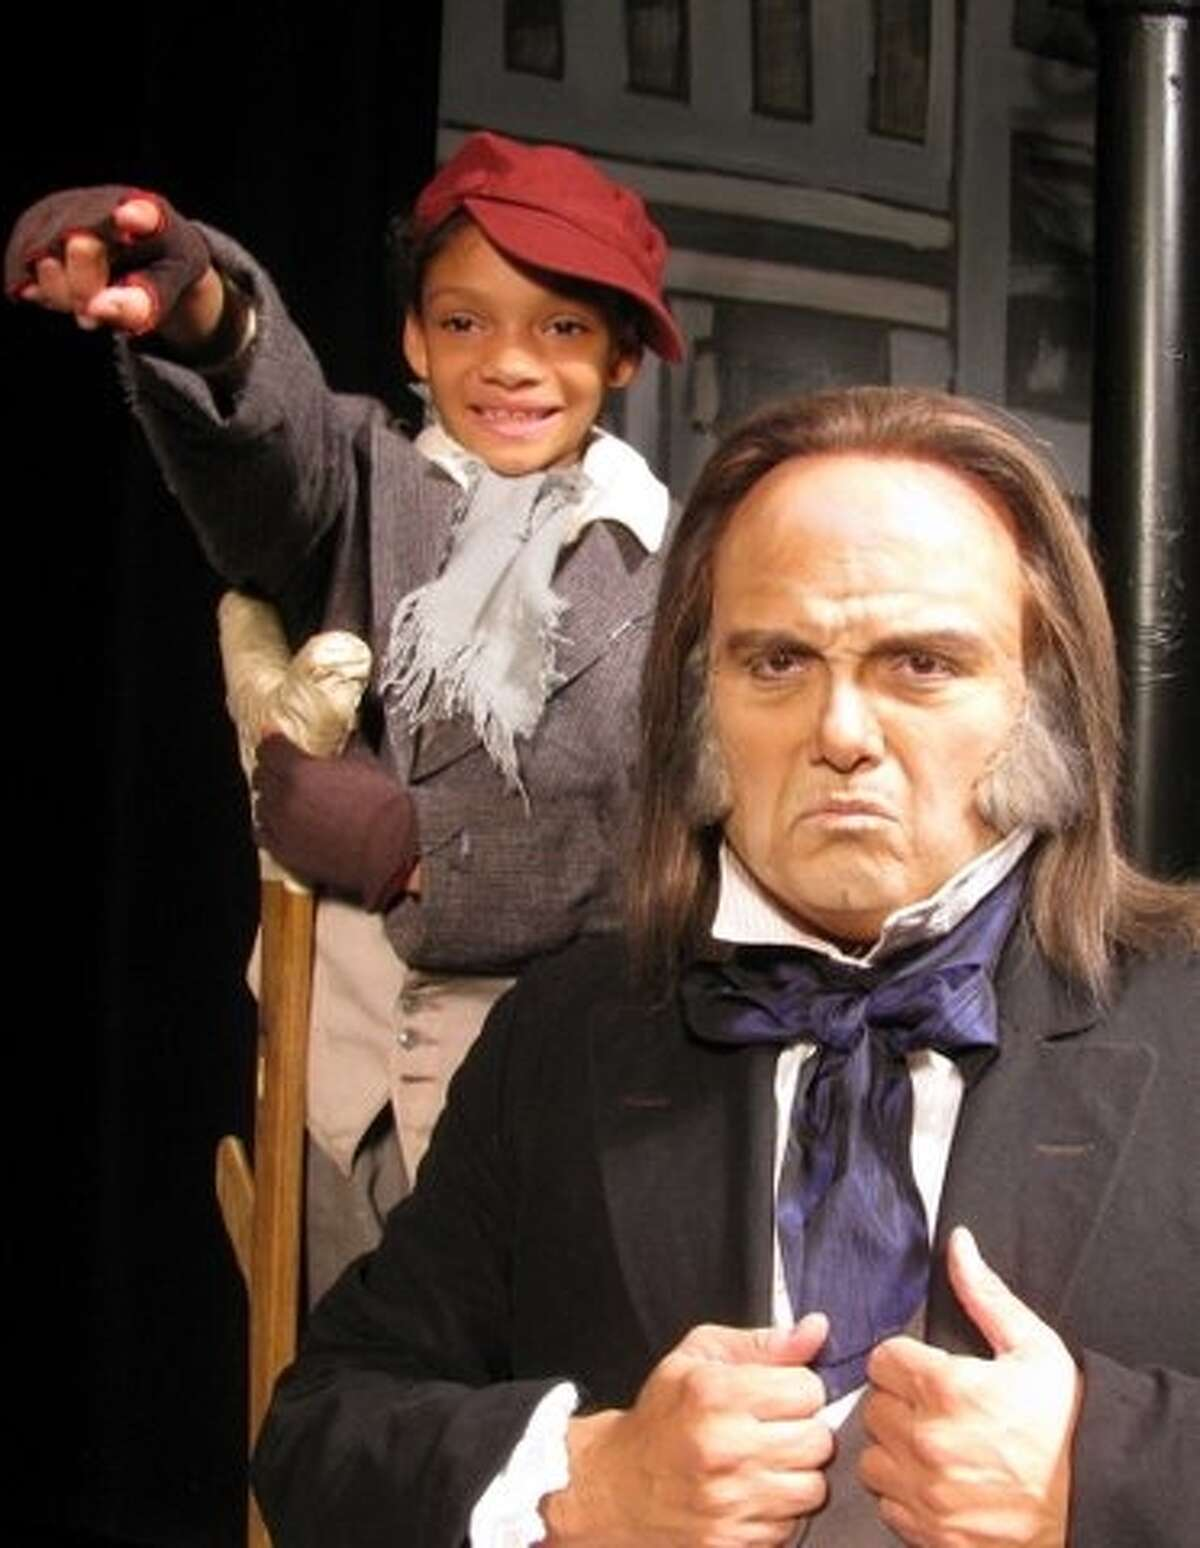 Daniela Landa-Gonzalez (from left) plays Tiny Tim and Gregroy Hinojosa plays Scrooge in